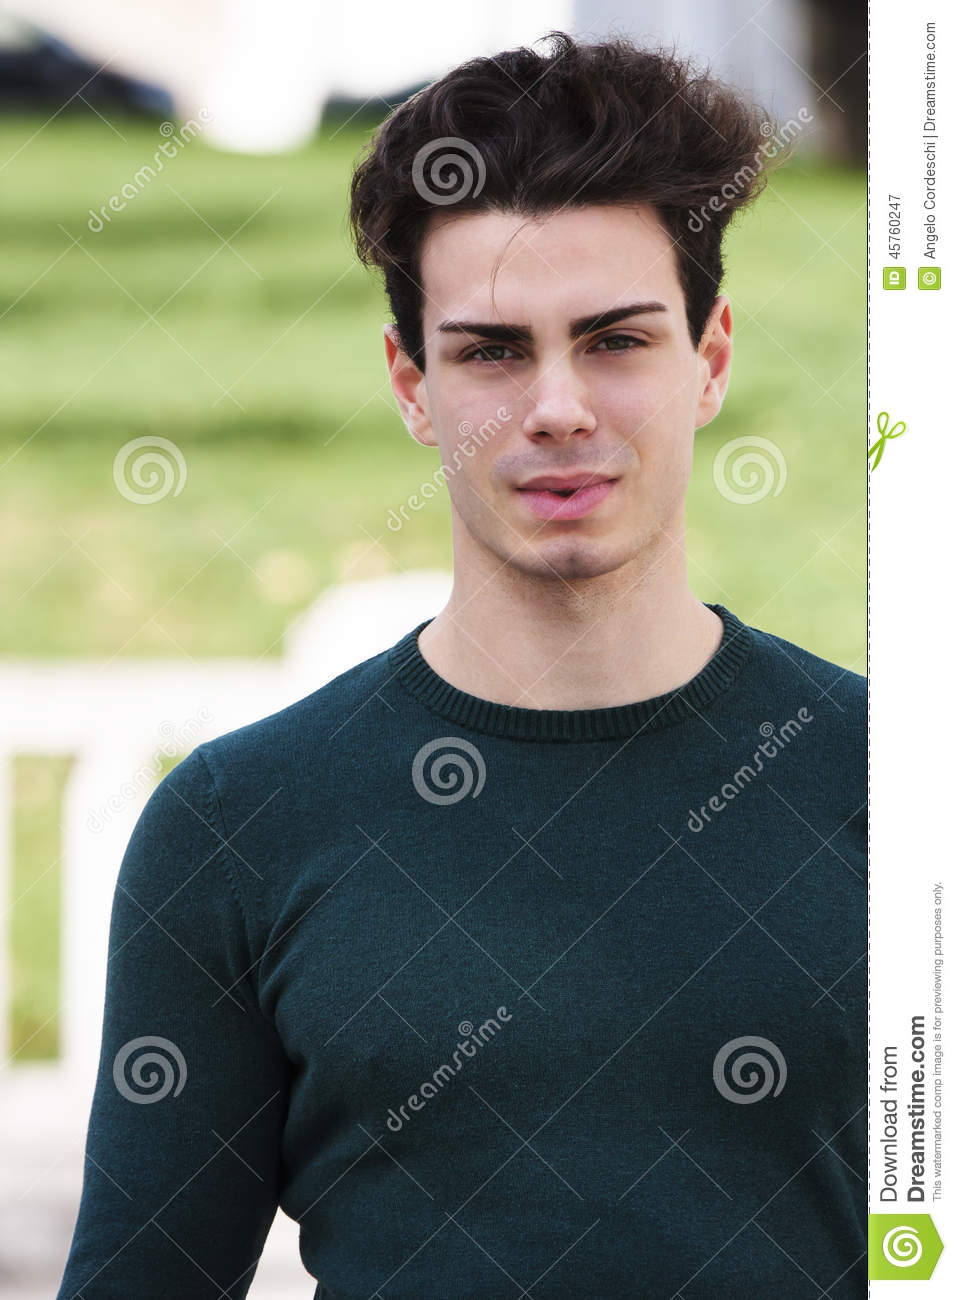 Stylish Hair Young Man Outdoors Tight Knit Stock Photo